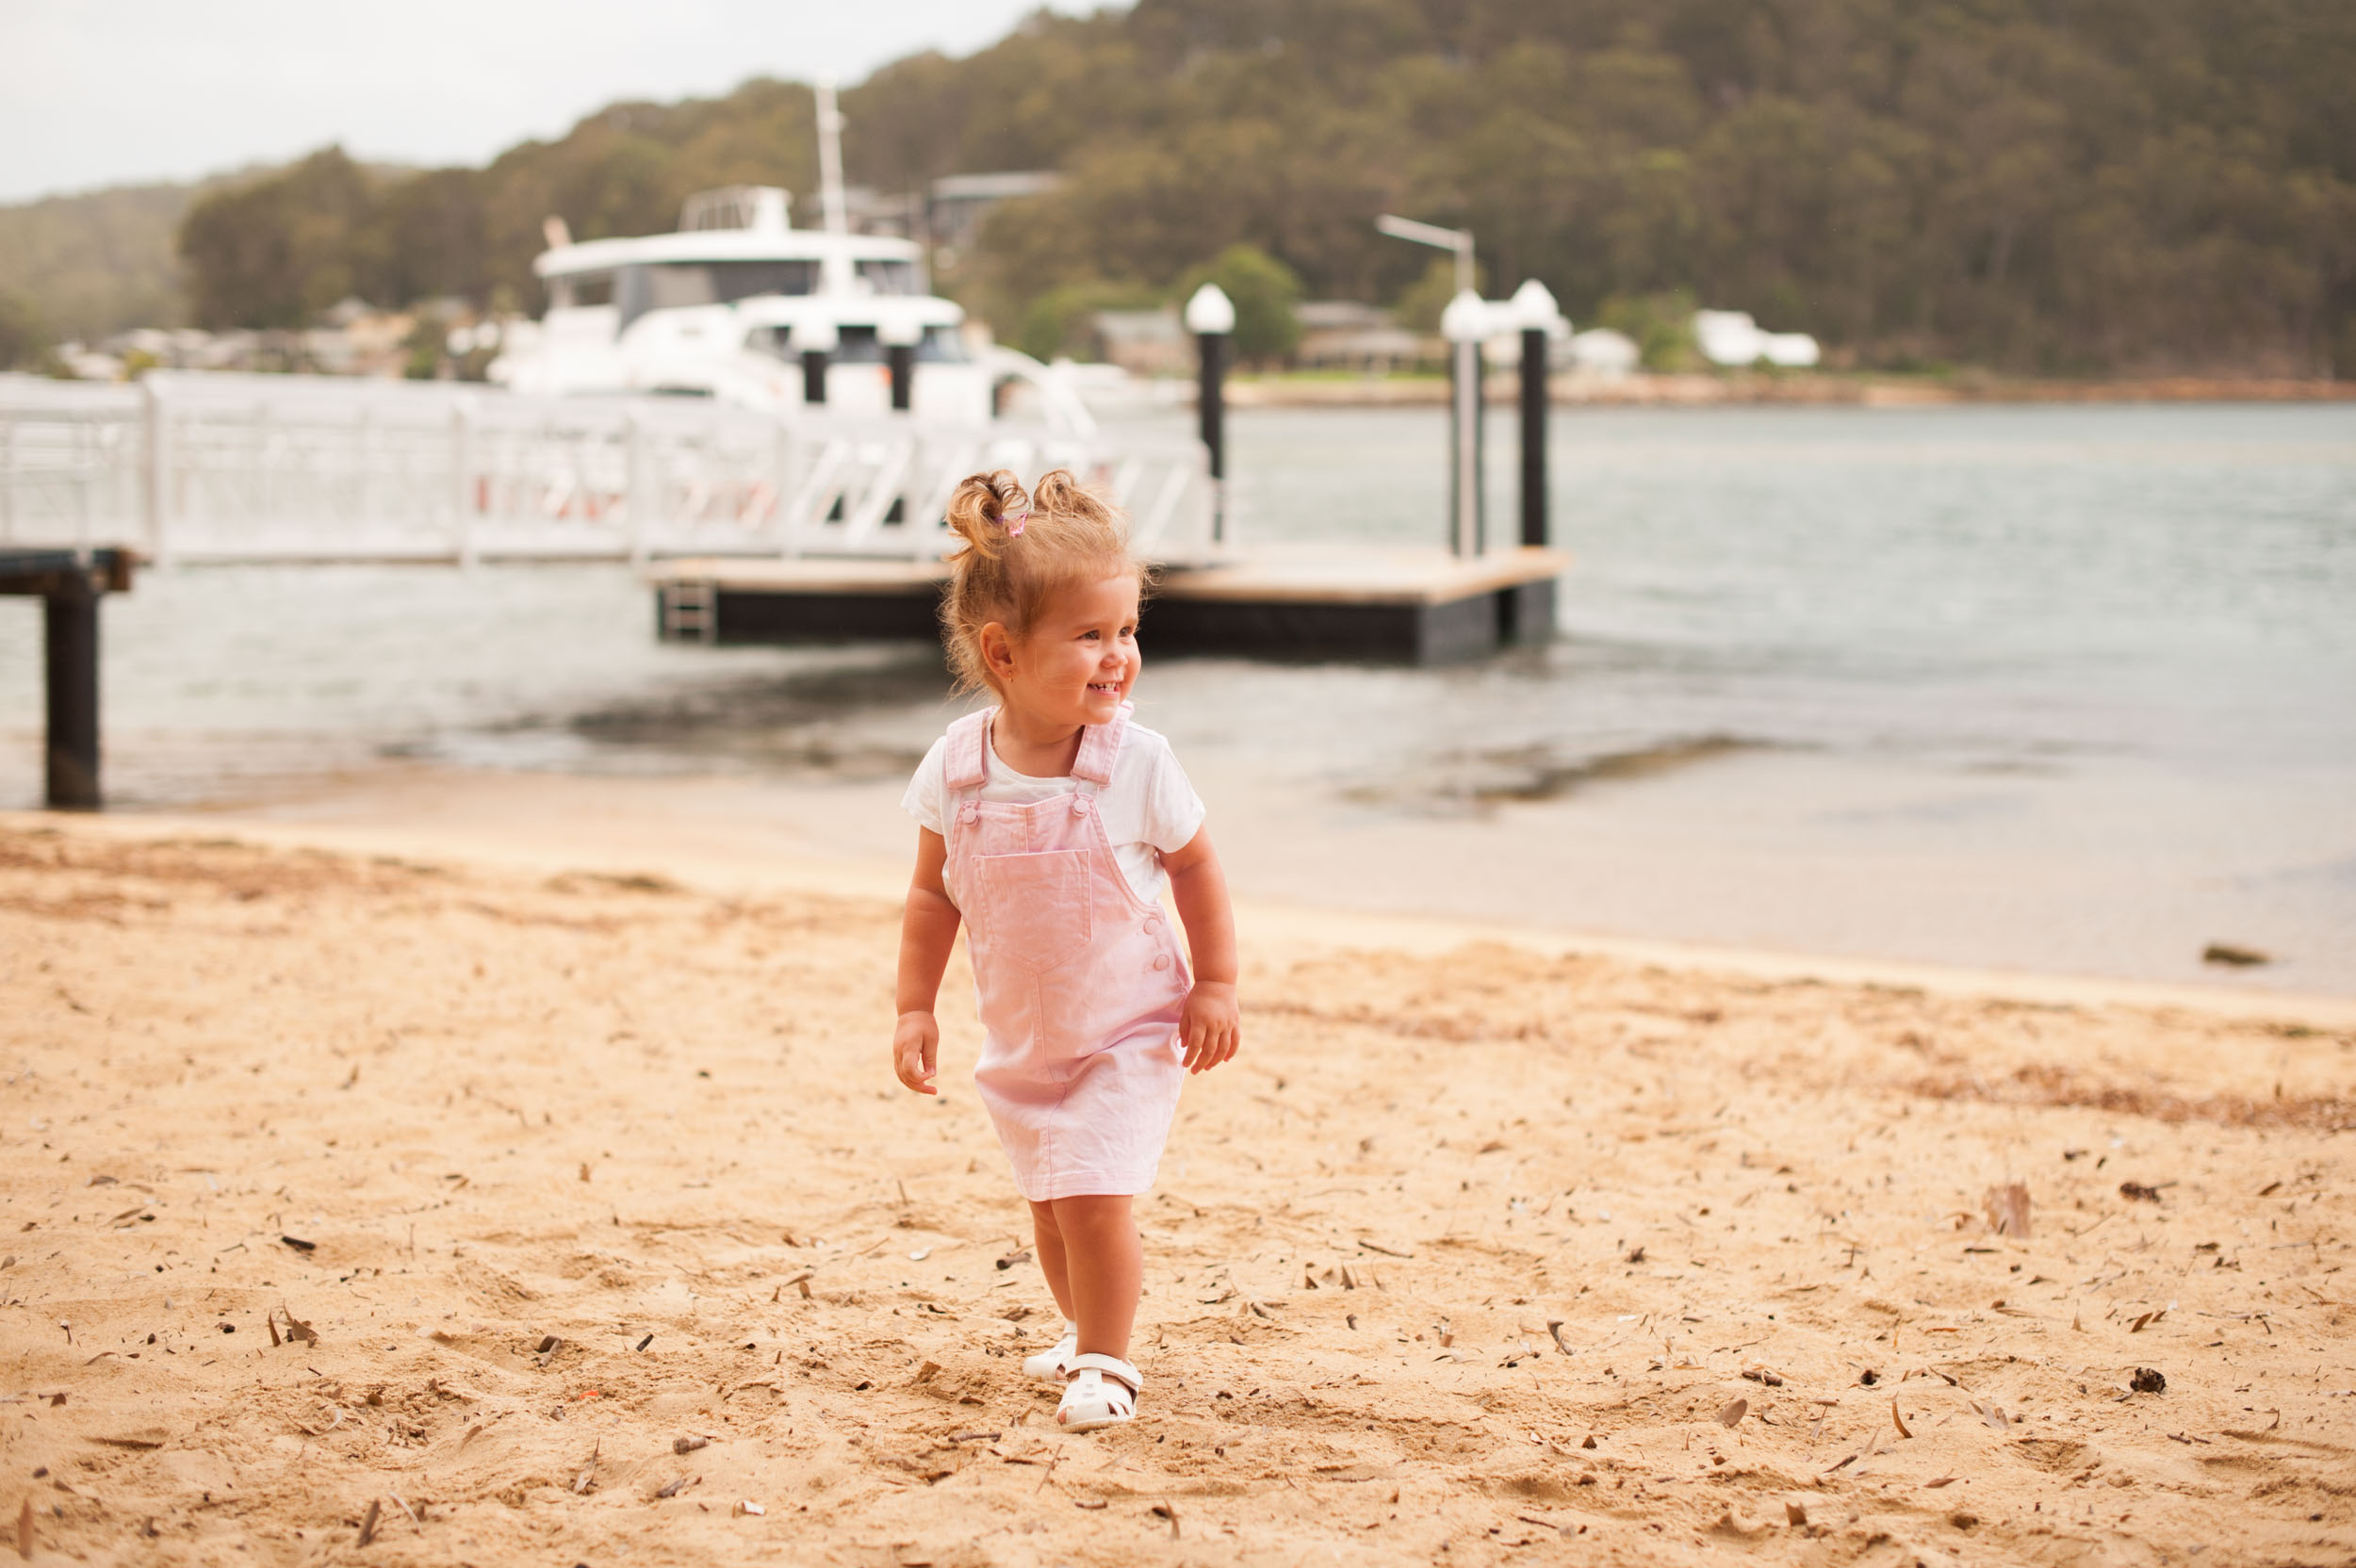 Smiling at Palm Beach Ferry Ettalong Wharf Documentary Family Photography